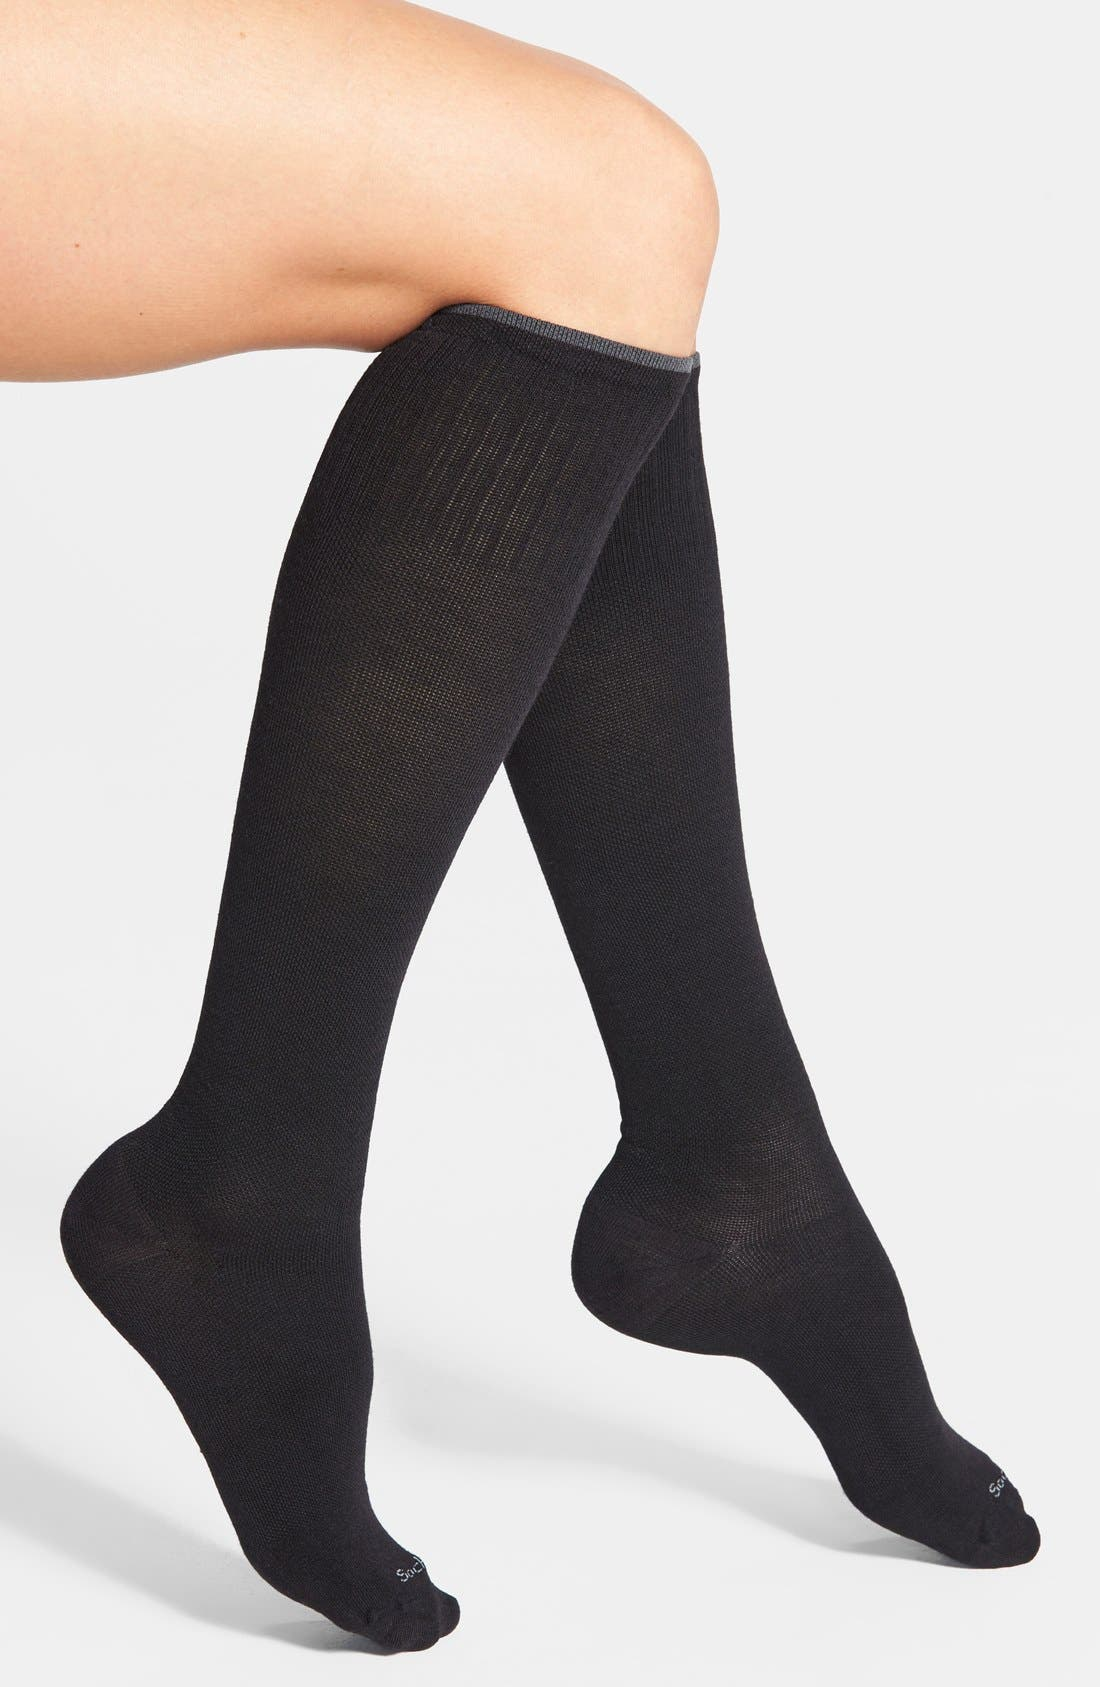 'Goodhew - On the Spot' Compression Knee Socks,                             Main thumbnail 2, color,